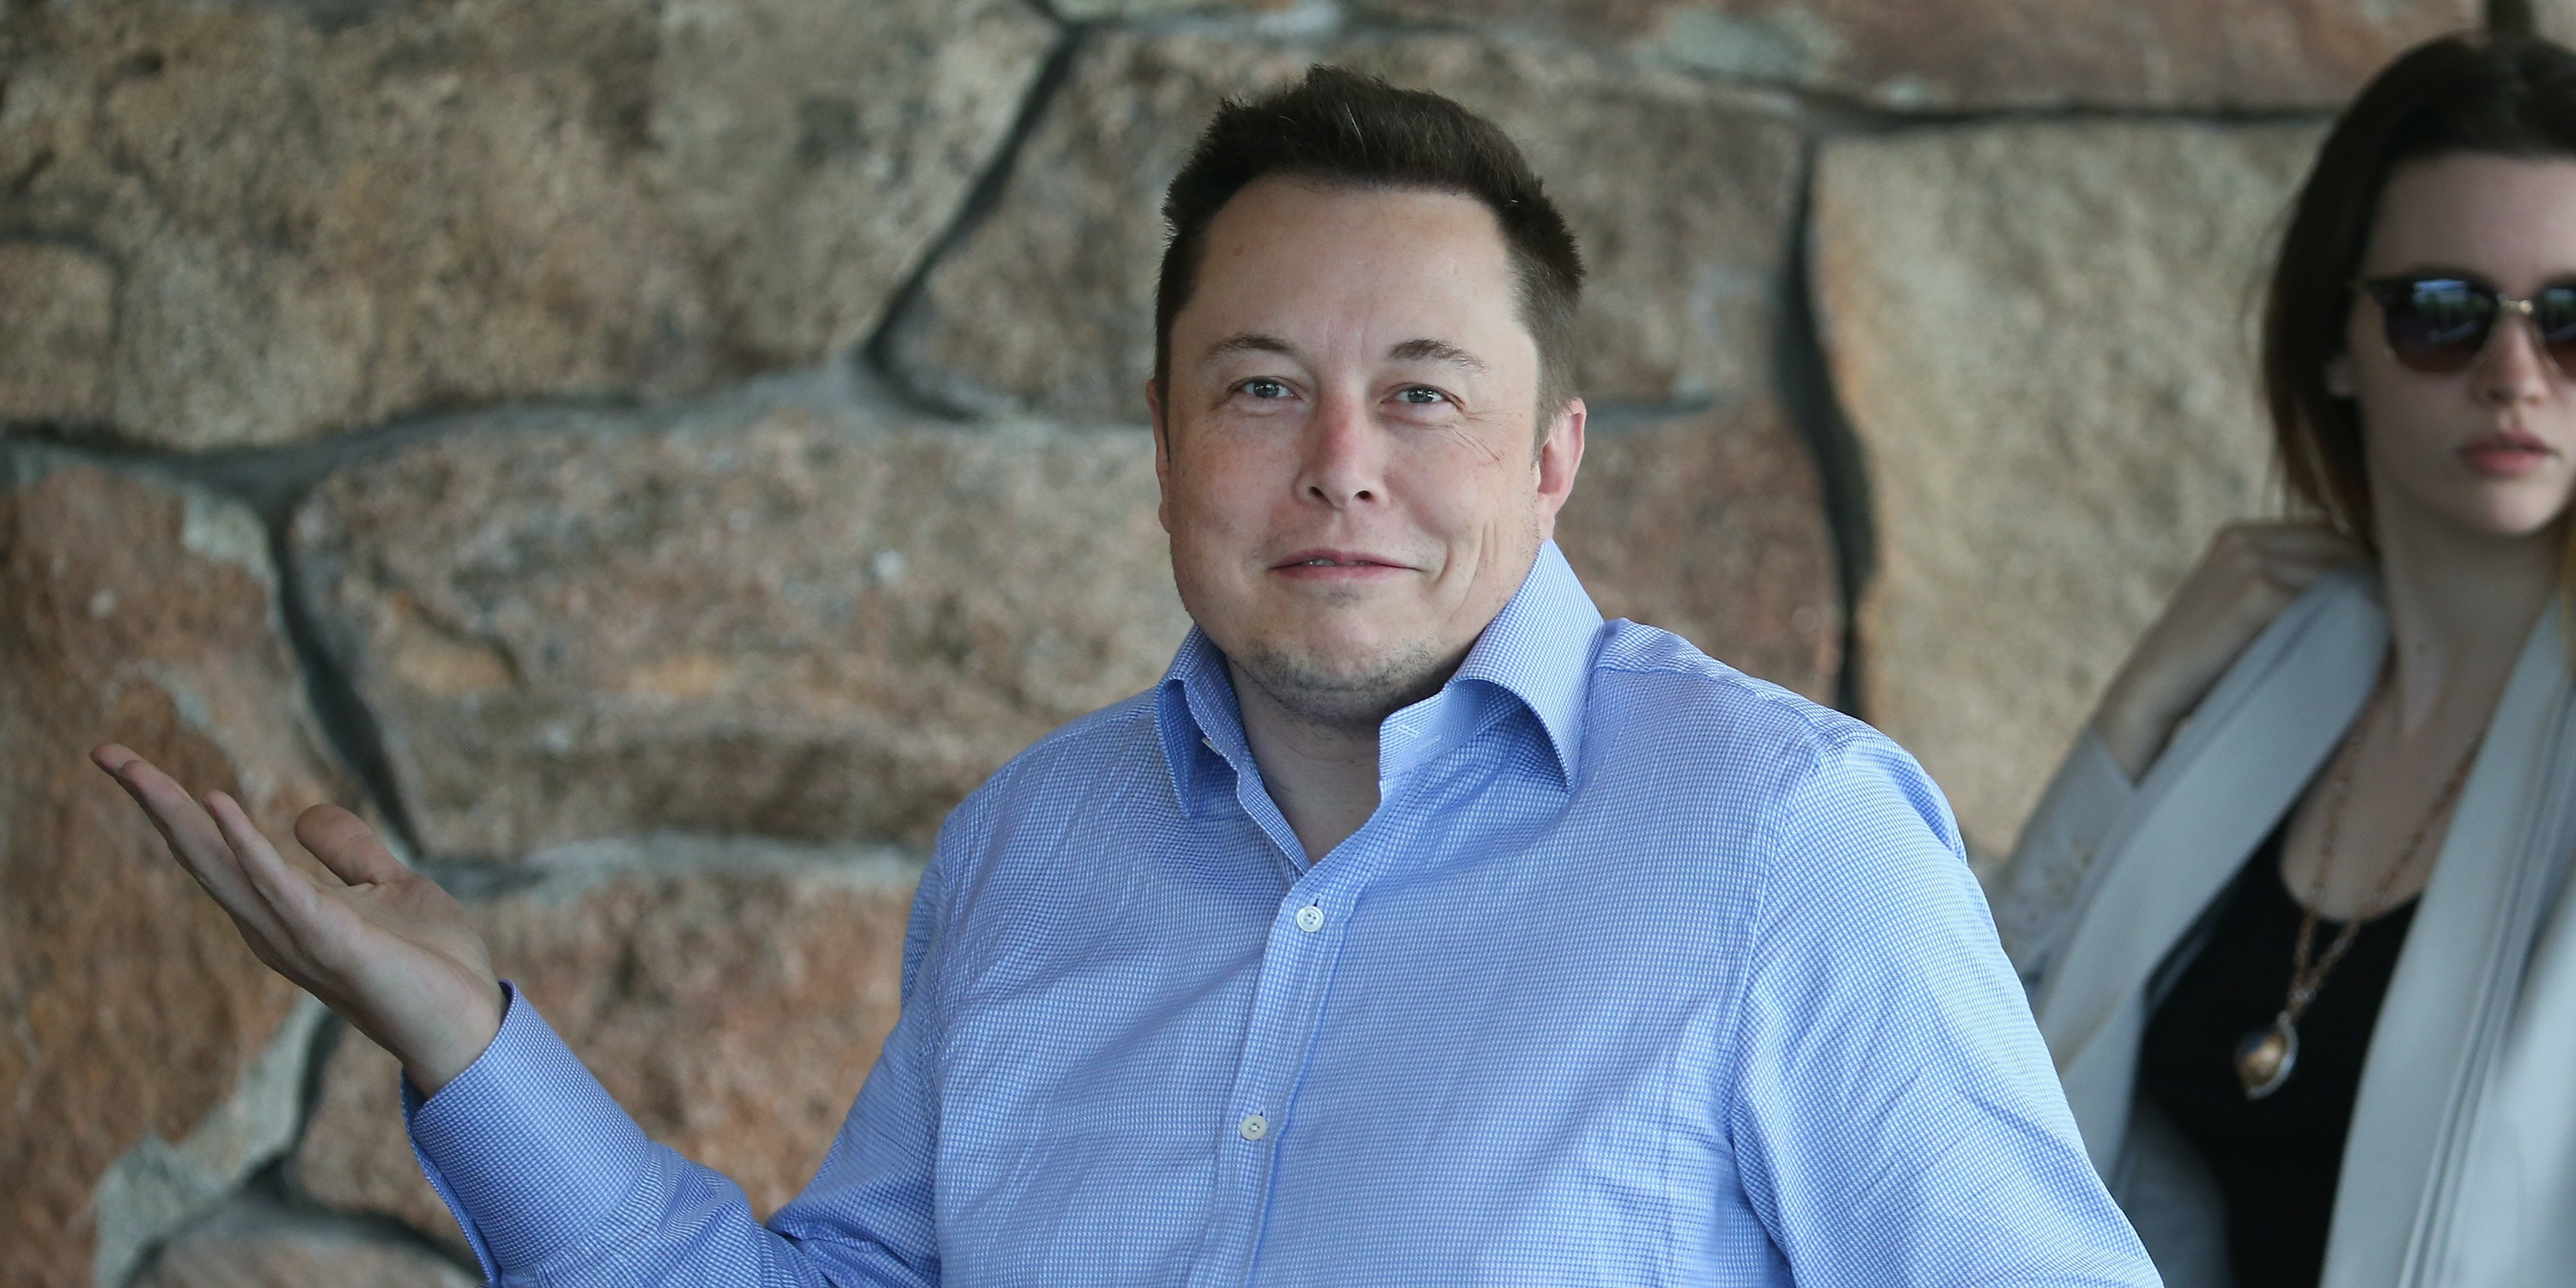 SUN VALLEY, ID - JULY 07: Elon Musk, CEO and CTO of SpaceX, CEO and product architect of Tesla Motors, and chairman of SolarCity, attends the Allen & Company Sun Valley Conference on July 8, 2015 in Sun Valley, Idaho. Many of the world's wealthiest and most powerful business people from media, finance, and technology attend the annual week-long conference which is in its 33nd year.  (Photo by Scott Olson/Getty Images)